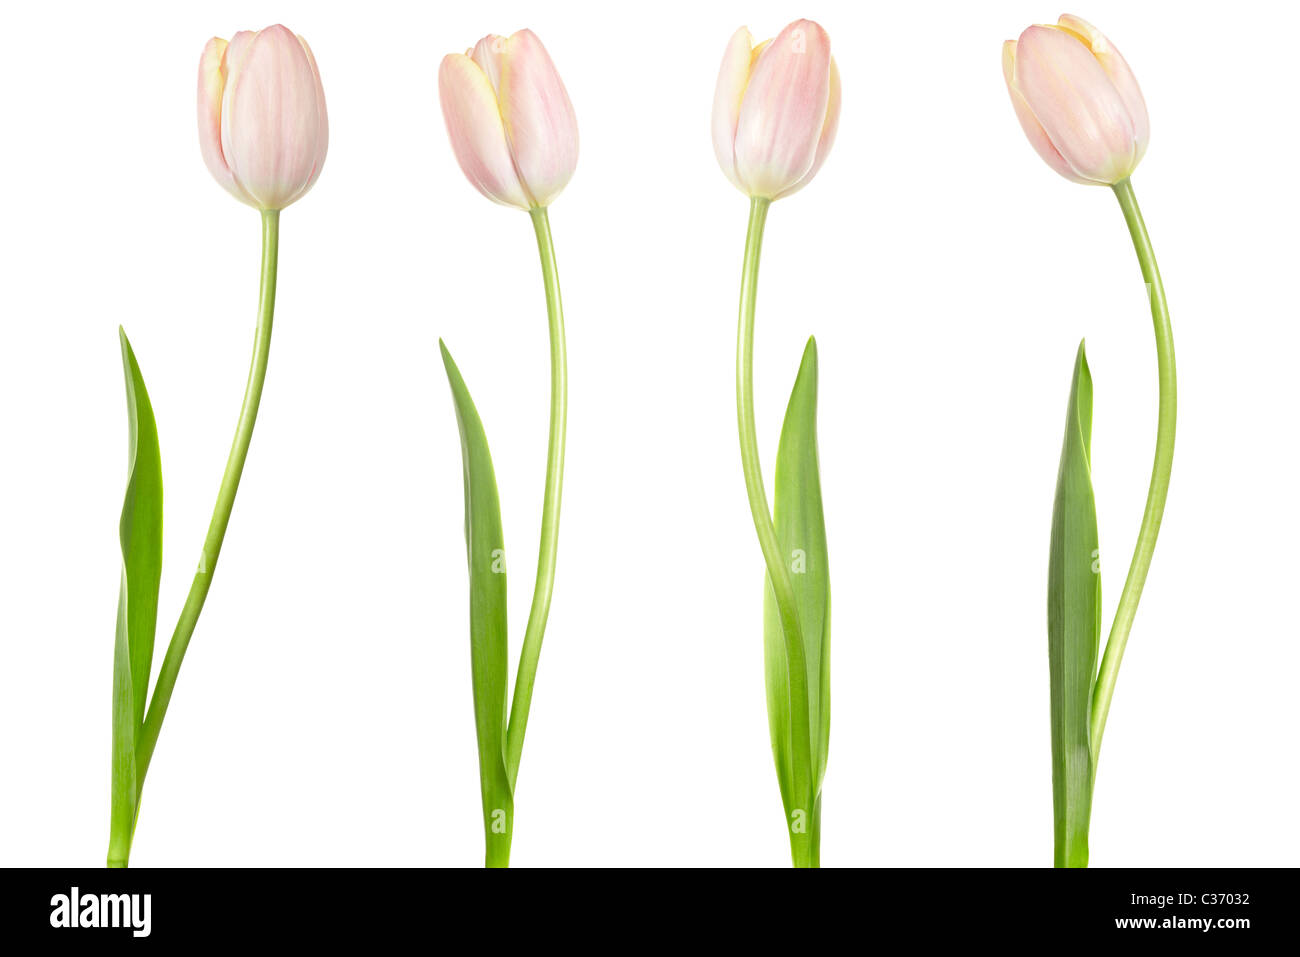 Tulips isolated - Stock Image